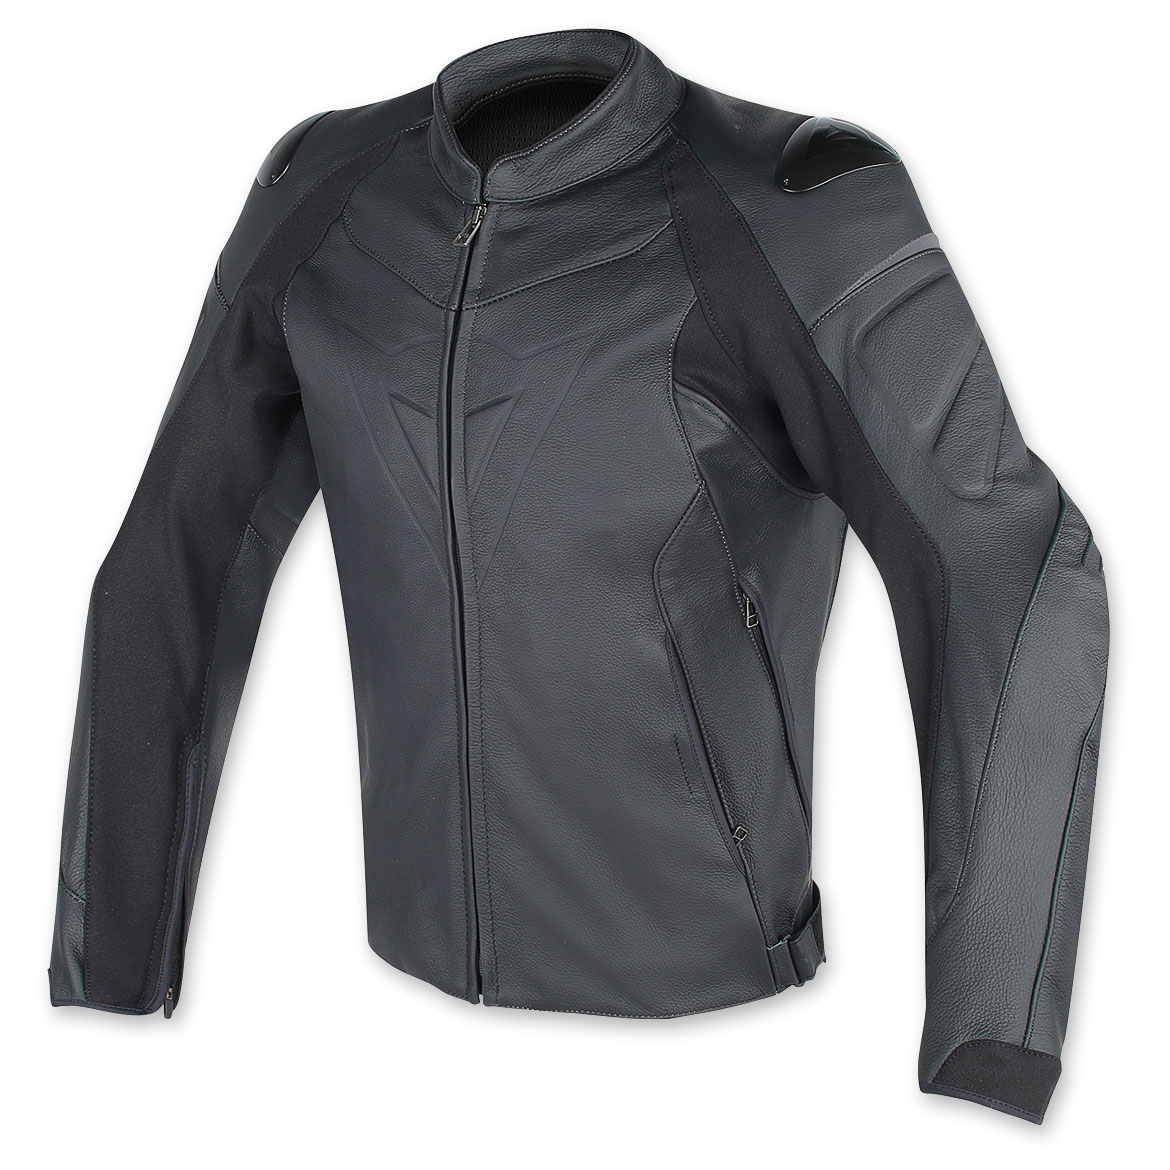 Dainese Men's Perforated Fighter Black Leather Jacket